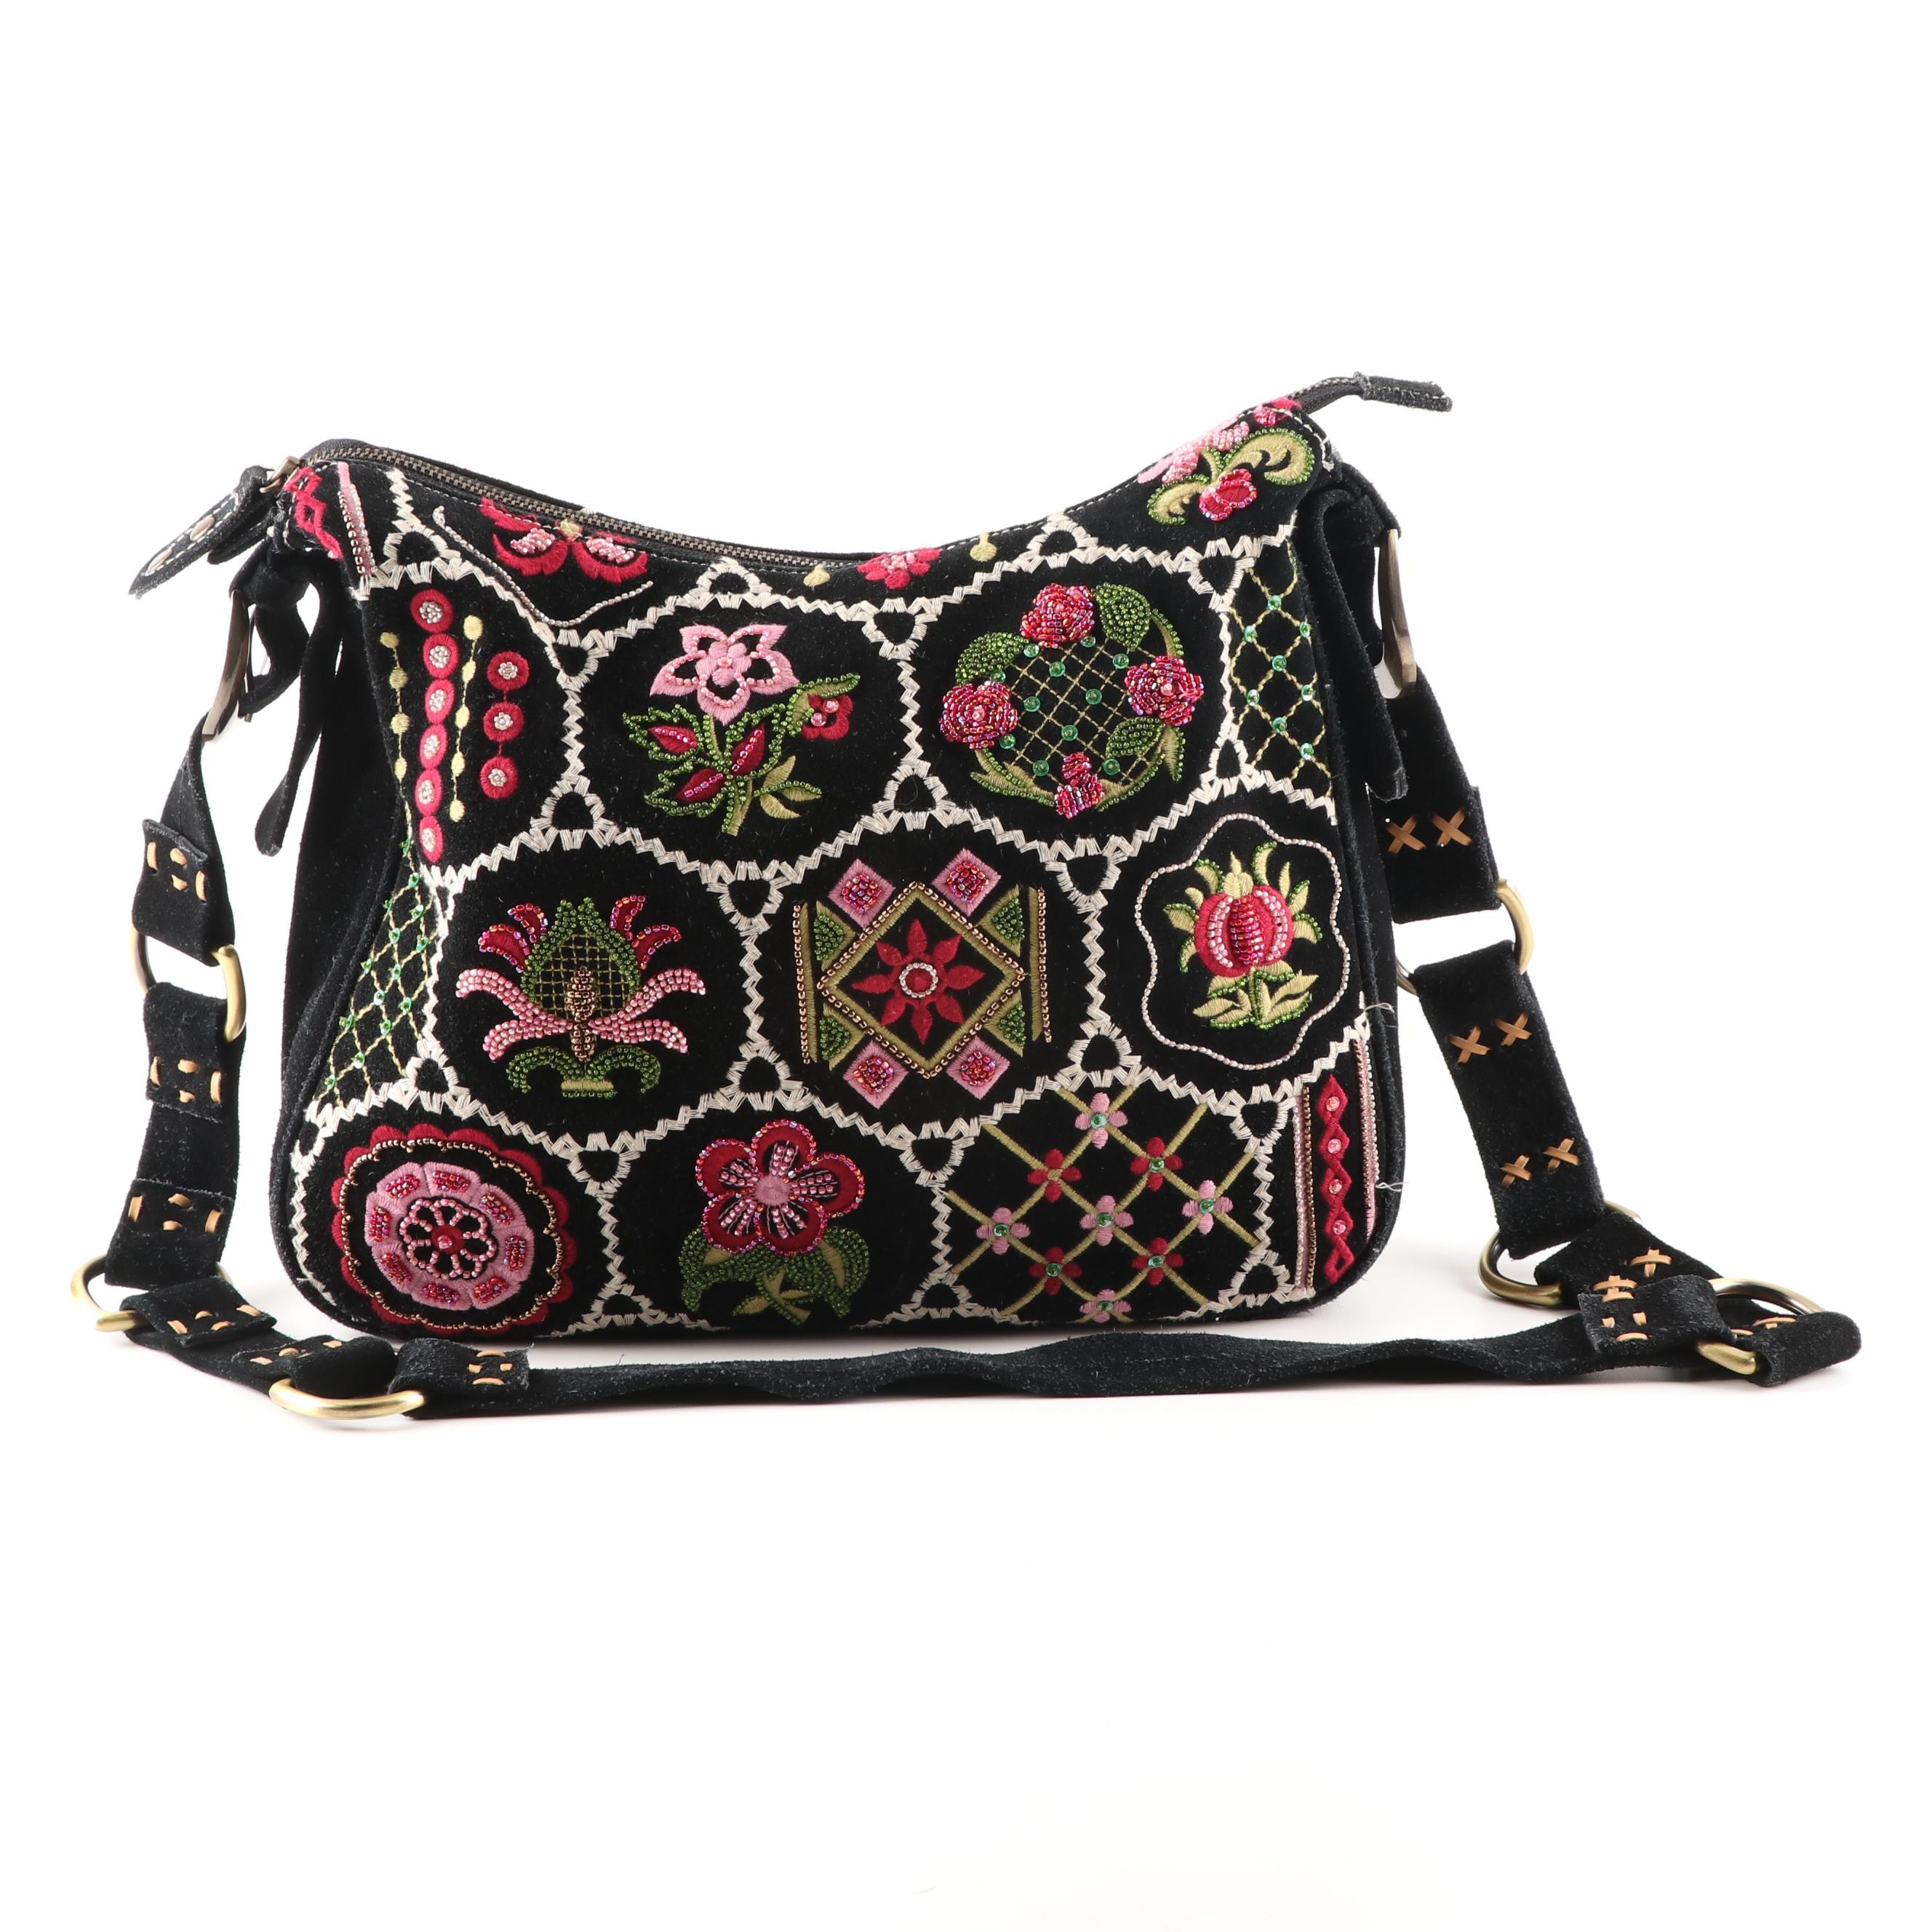 Isabella Fiore Embroidered and Beaded Black Suede Shoulder Bag